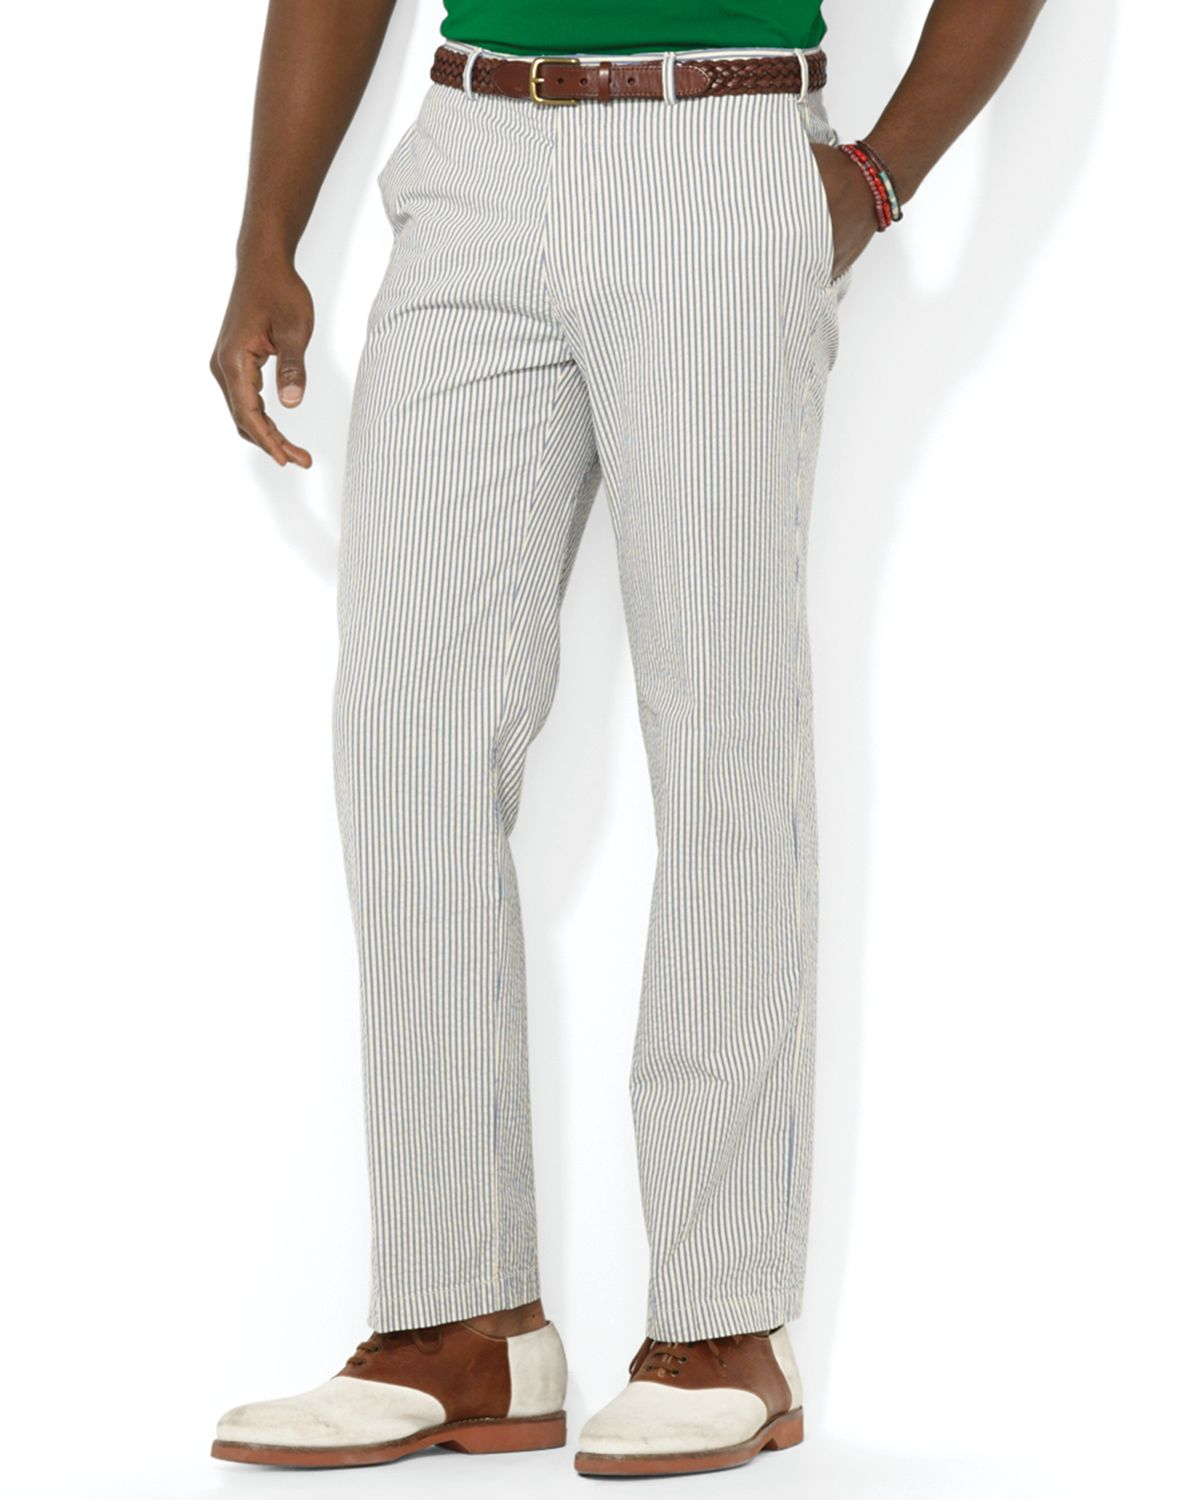 Our men's Clark fit seersucker pants are made from pure cotton. Clark fit has a plain front, sits straight through the hip and thigh. Imported. Seersucker pants, made from pure cotton. Clark fit has a plain front, sits straight through the hip and thigh. Machine wash. Imported/5(5).